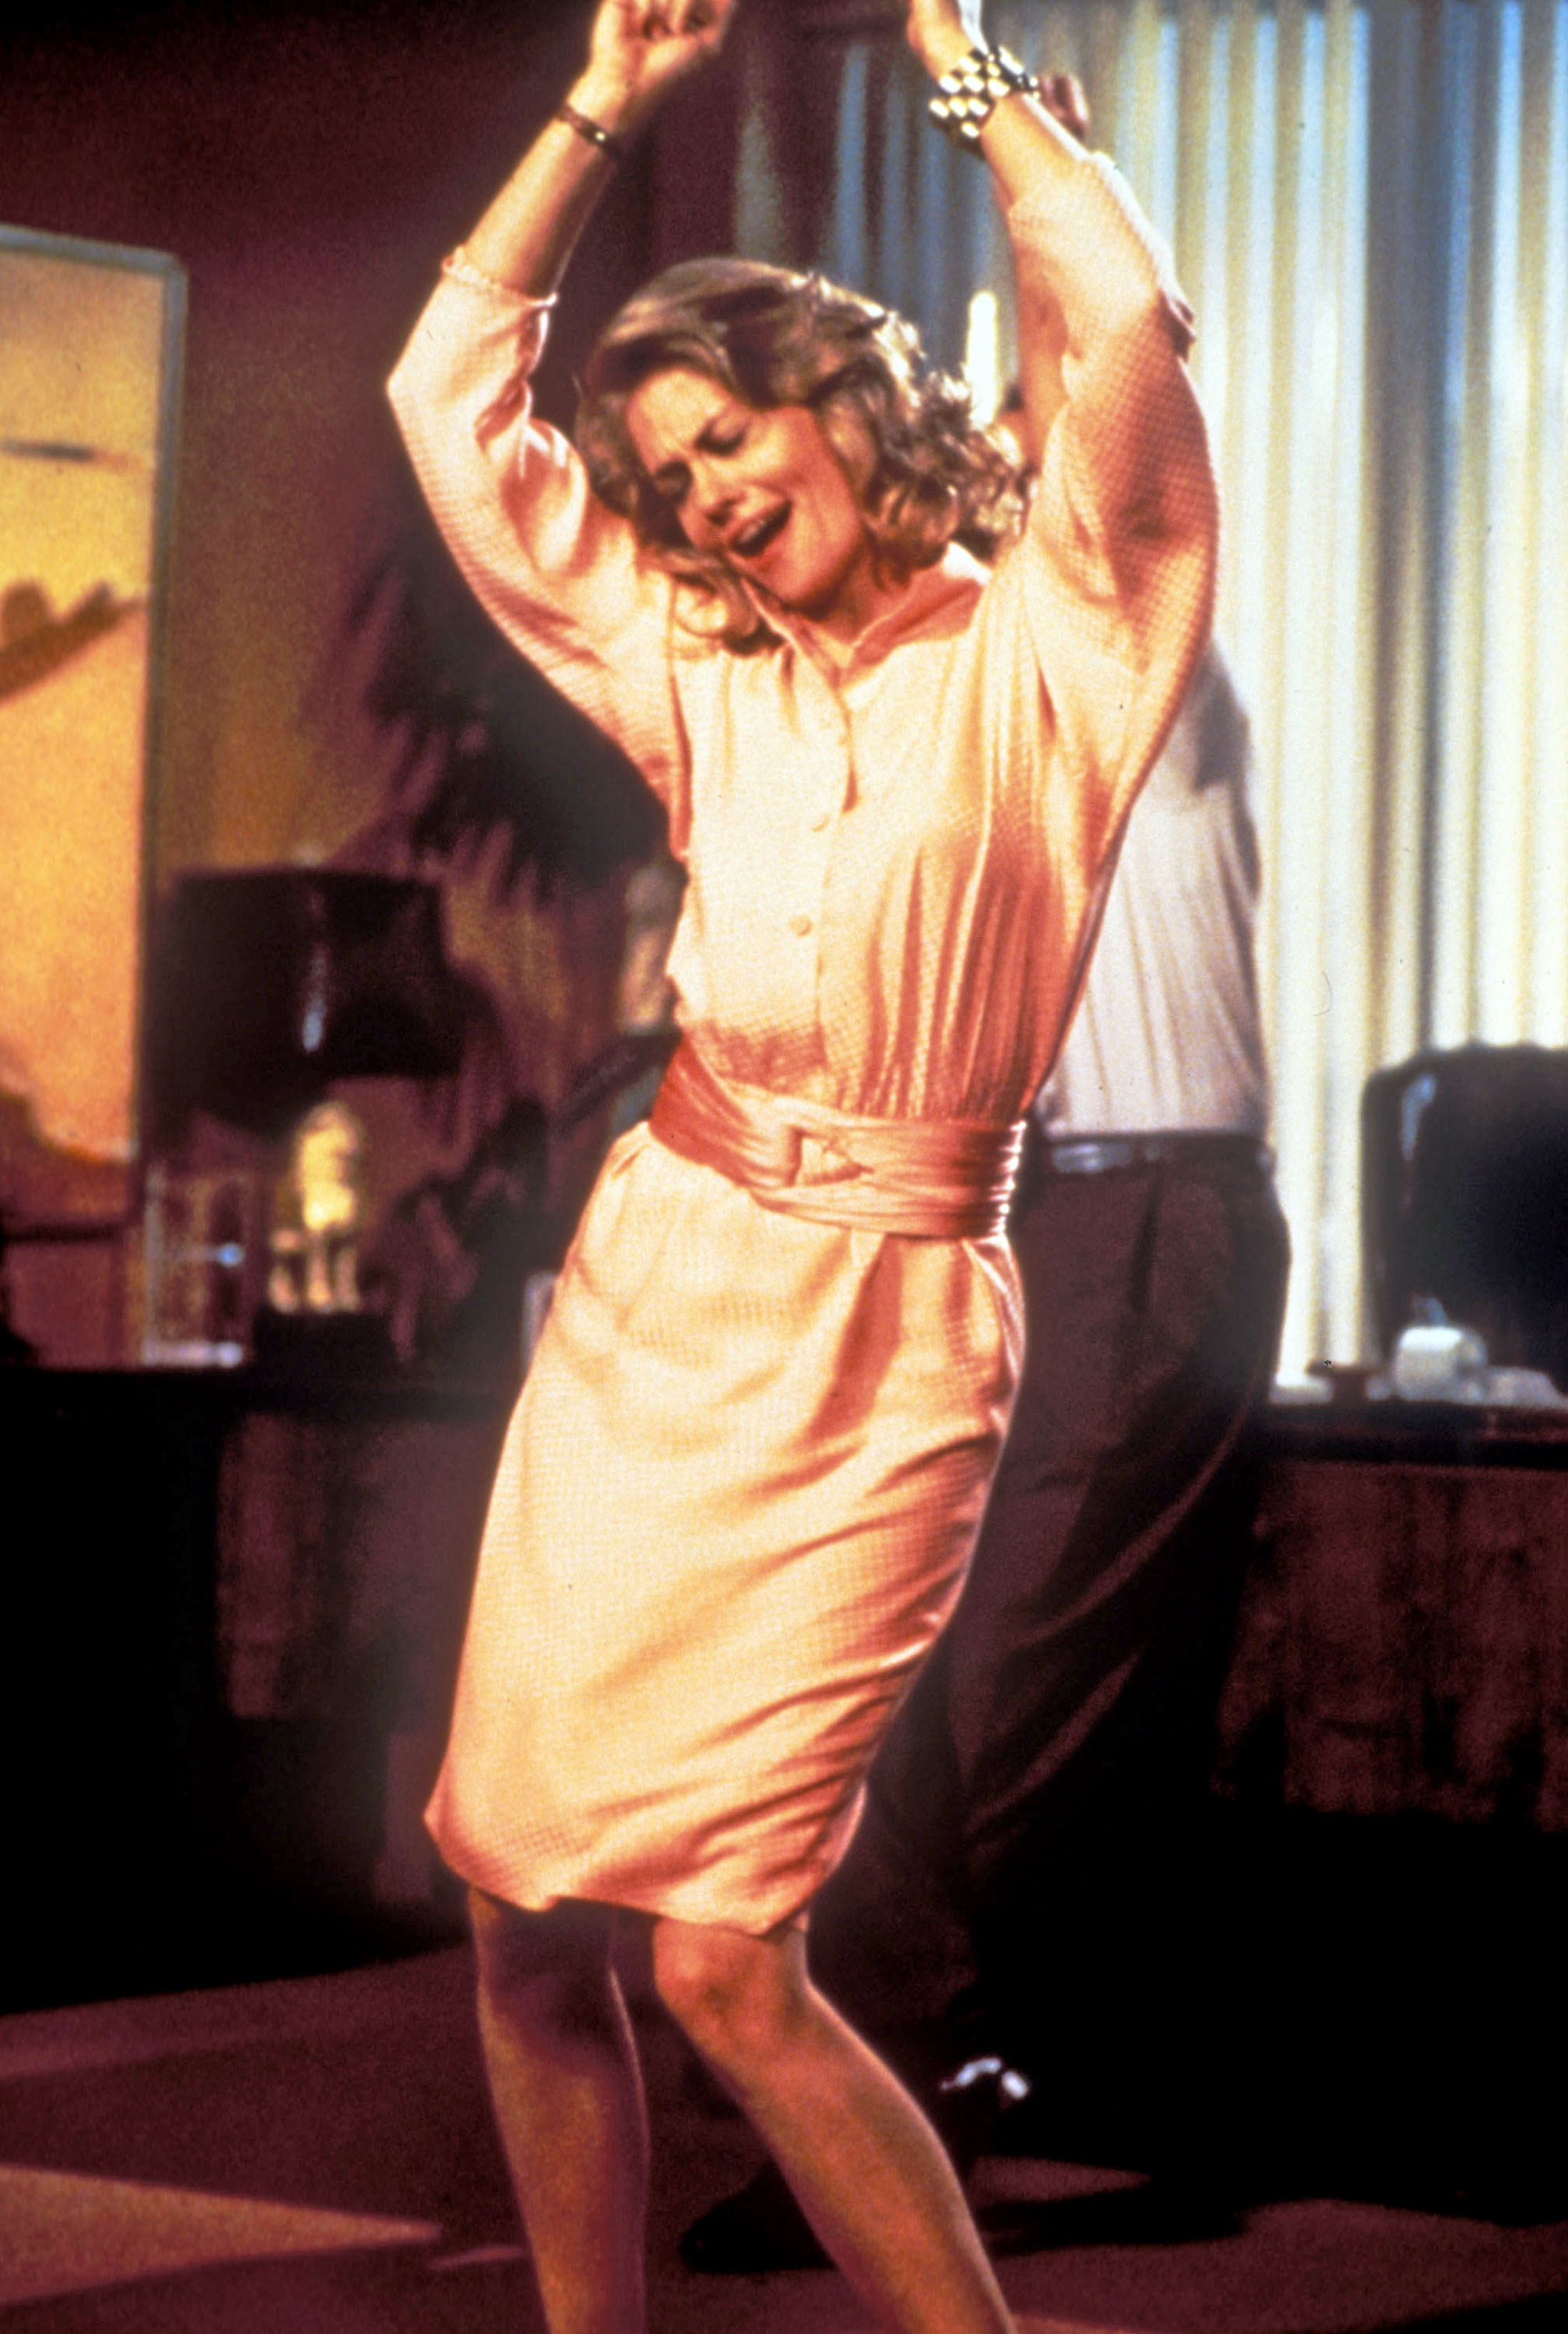 moonlighting cybill shepherd bruce willis allyce beasley complete published 28 2013 at 2200 times 3275 in moonlighting